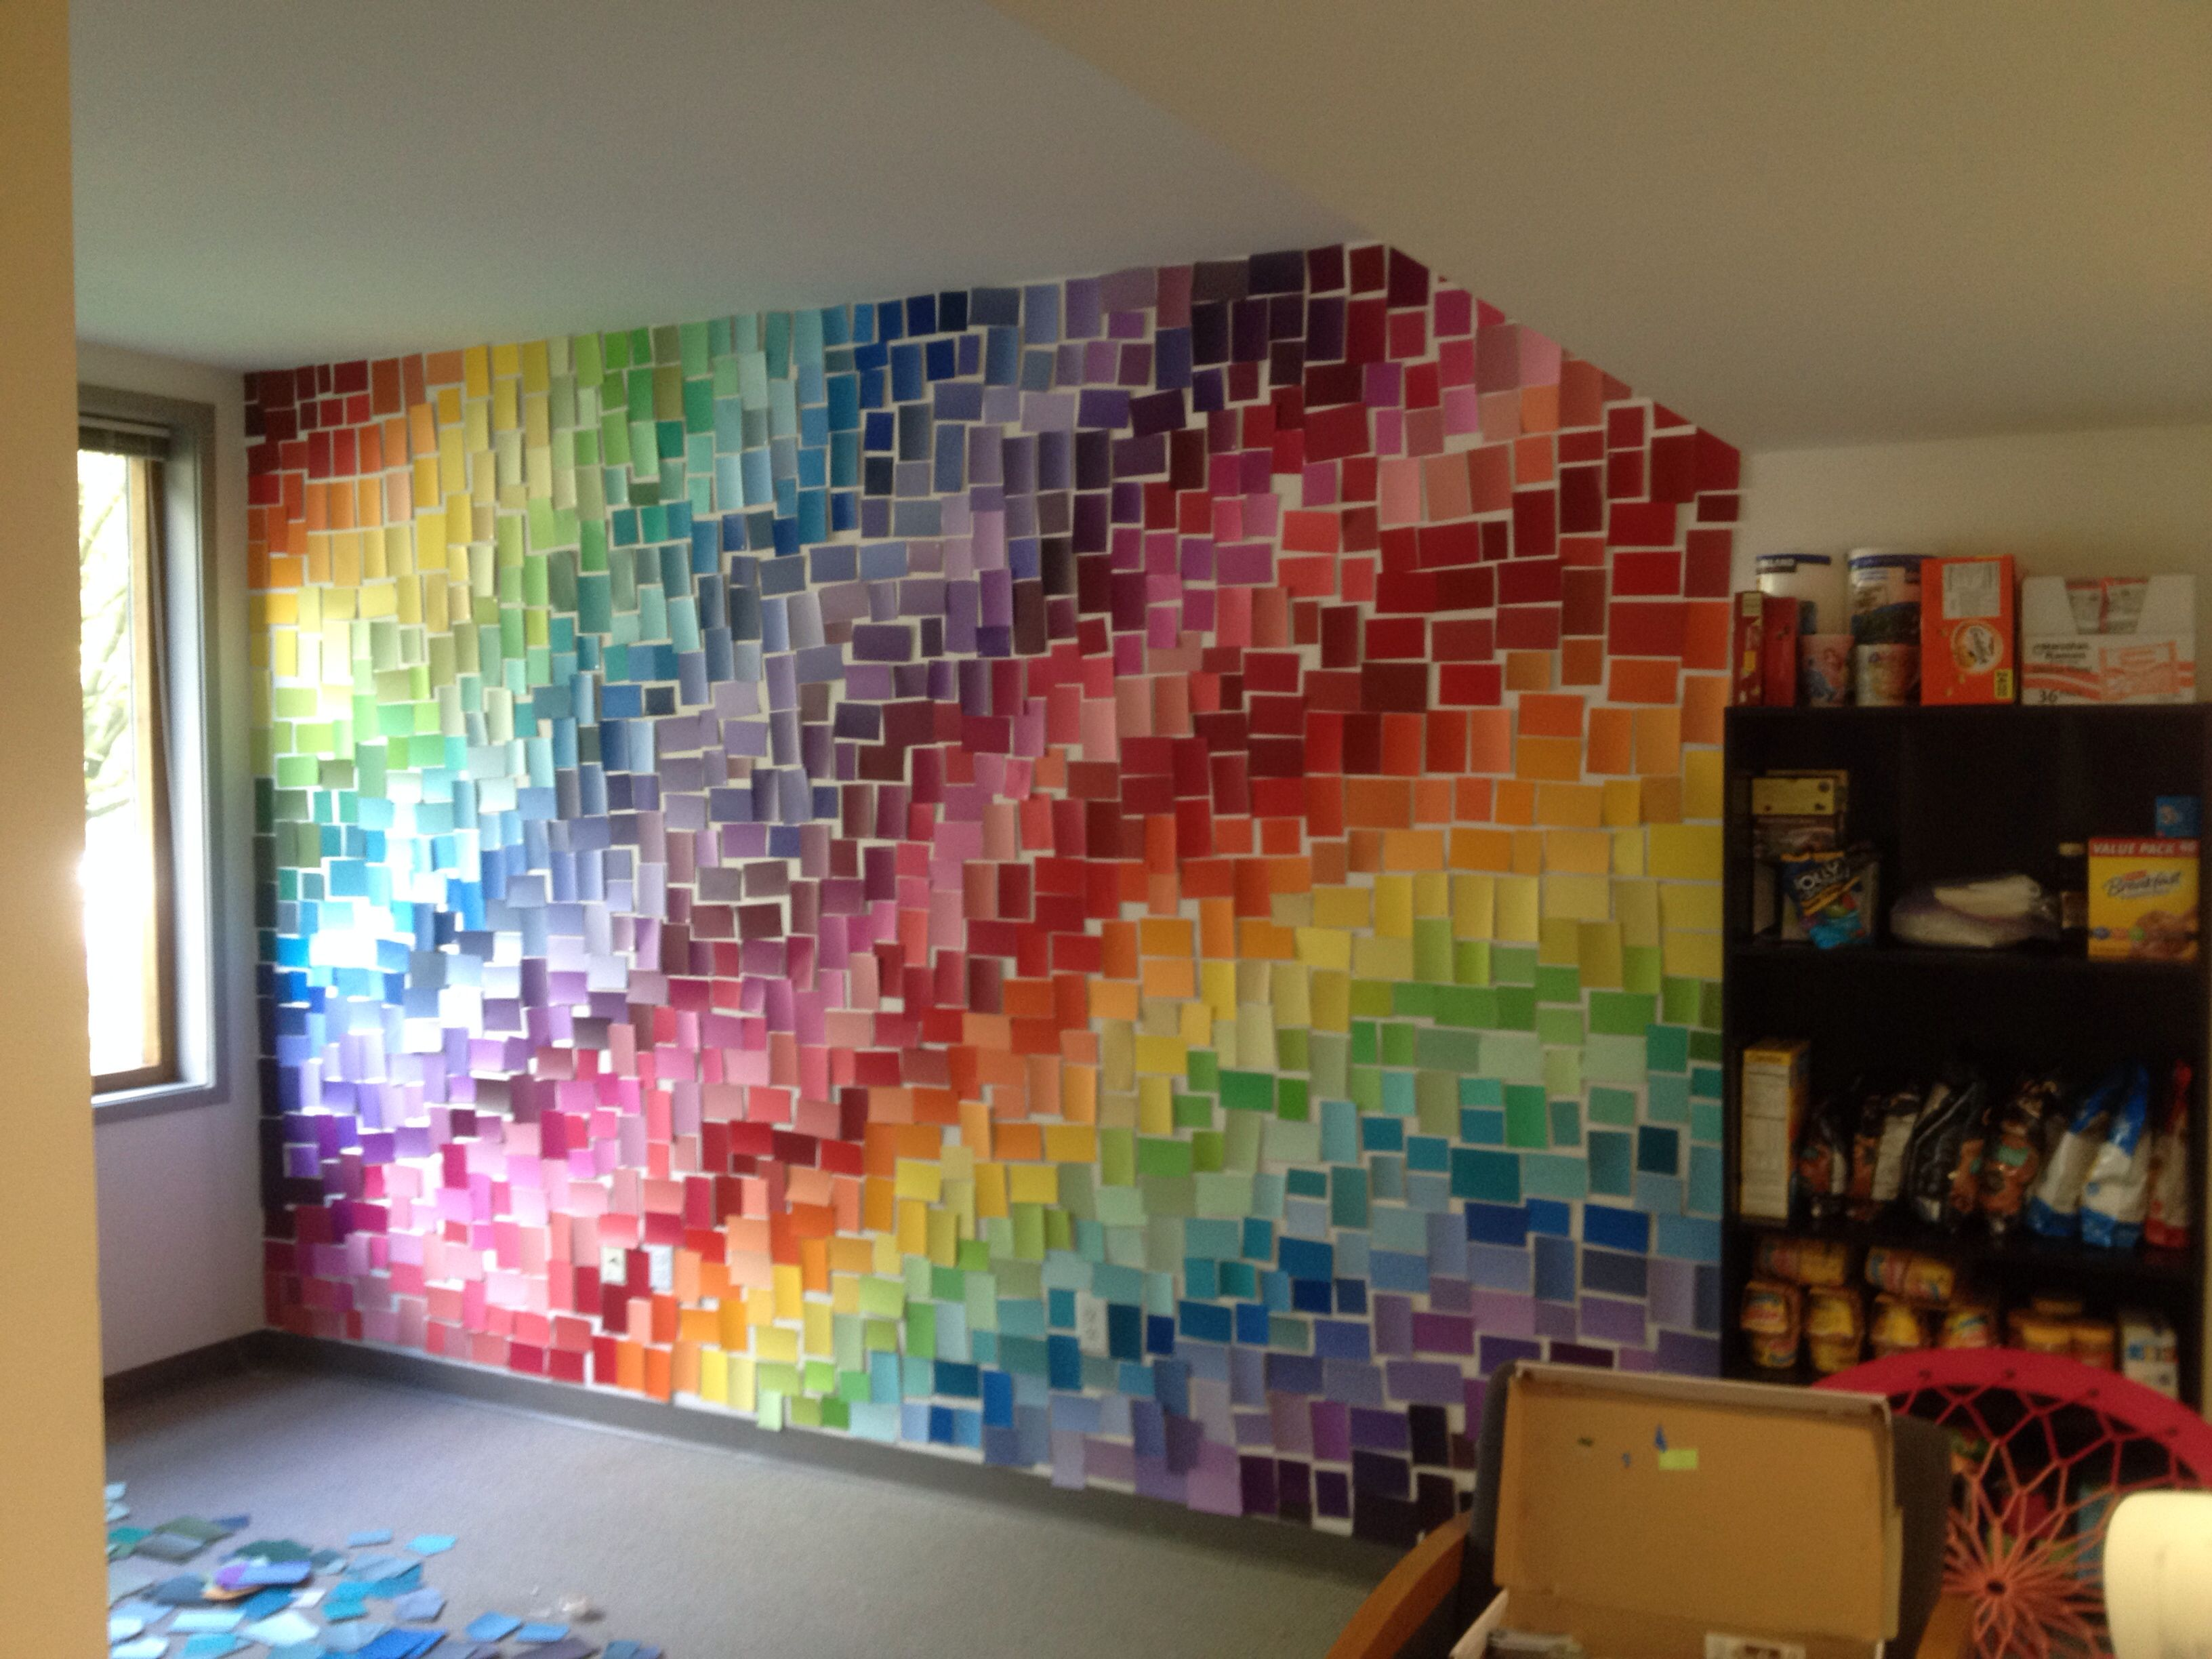 Paint chip wall in our dorm room. | Paint chip wall, Paint ...